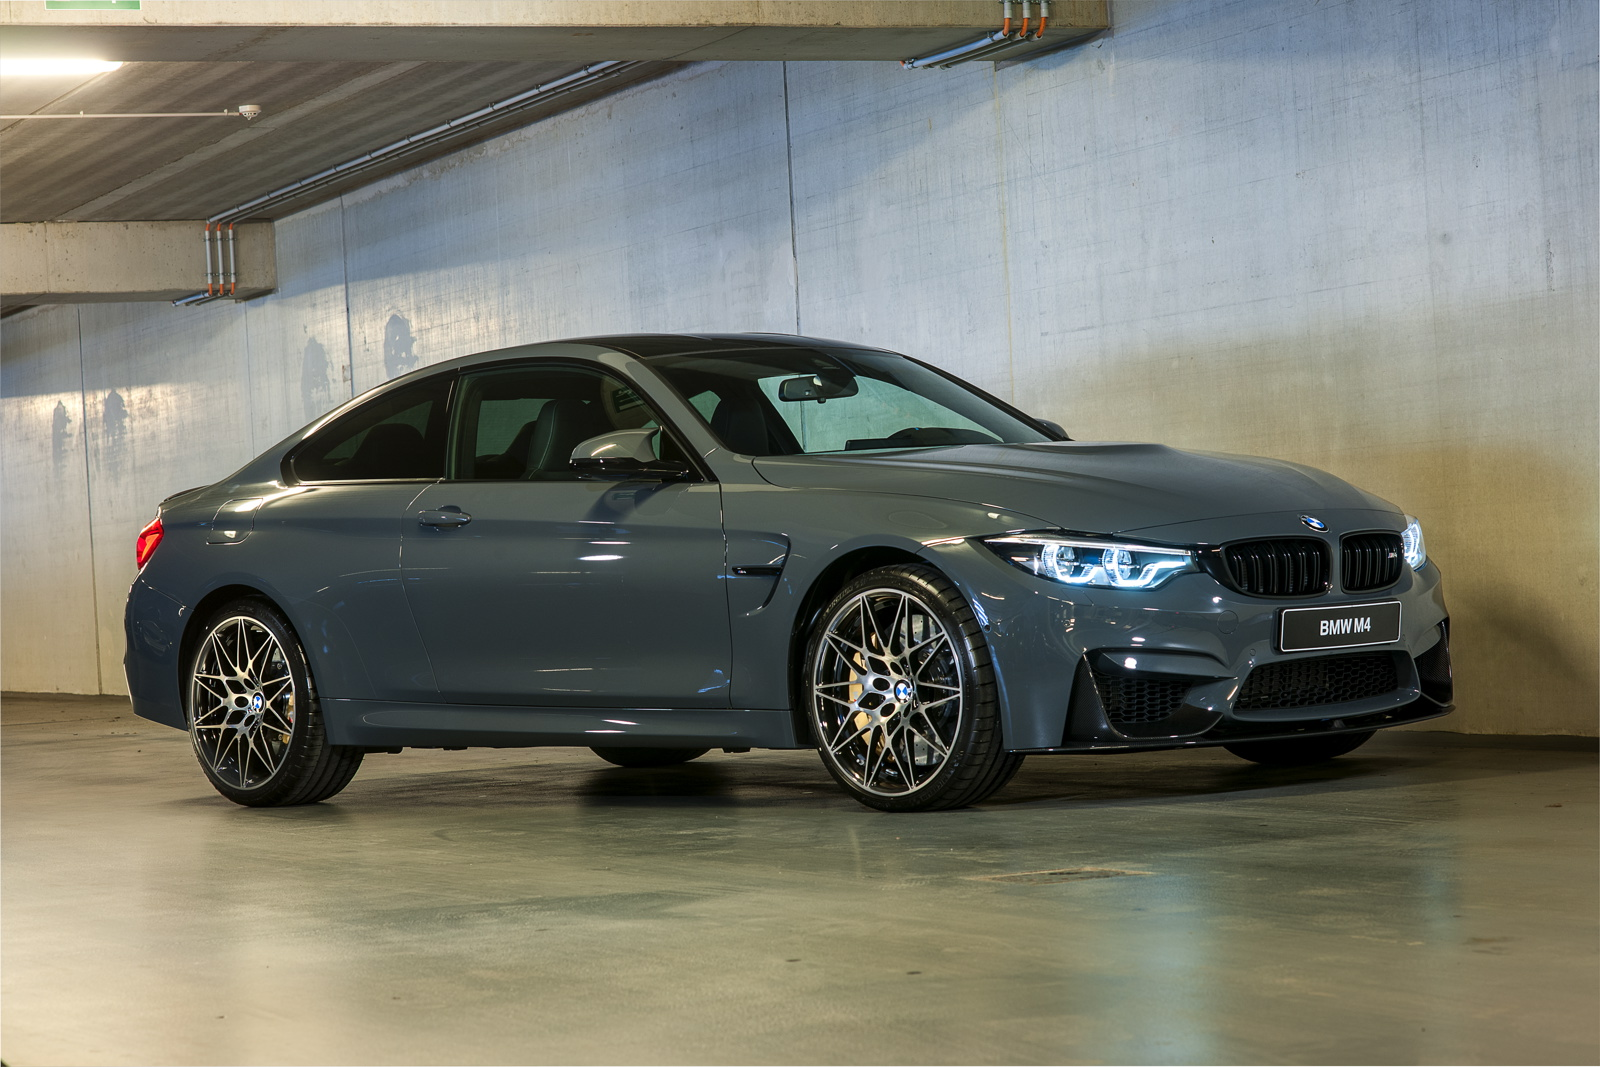 Avus And Telesto Limited Editions Of The Bmw M3 And M4